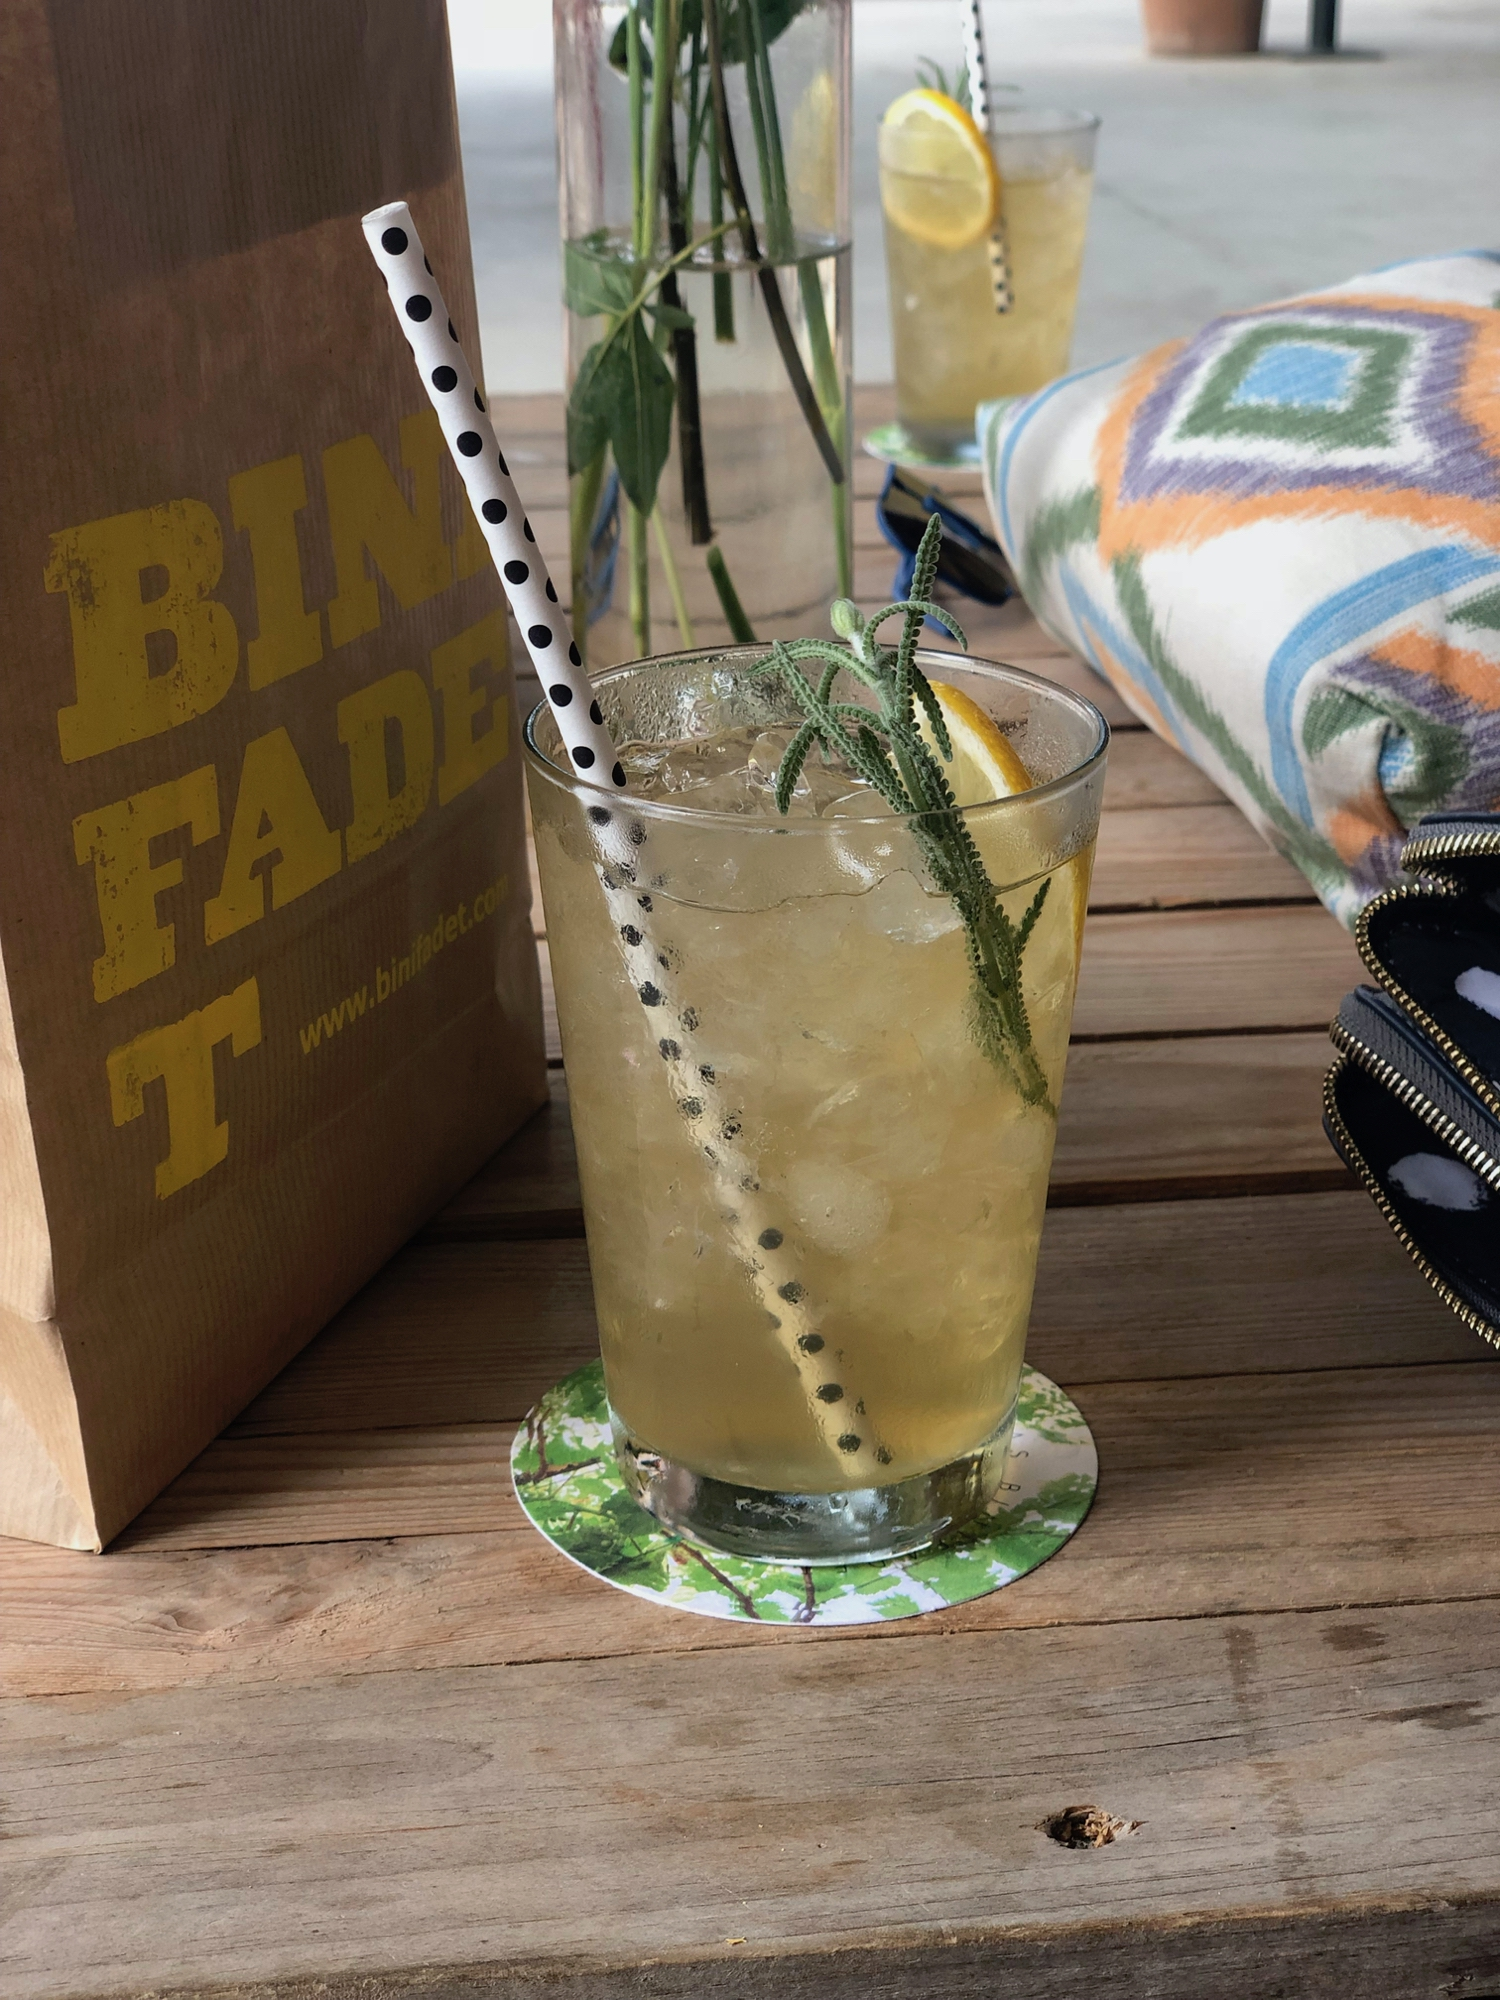 A paper bag with 'Binifadet' printed on the side, accompanied by fancy yellow Lavendar Lemonade drink.